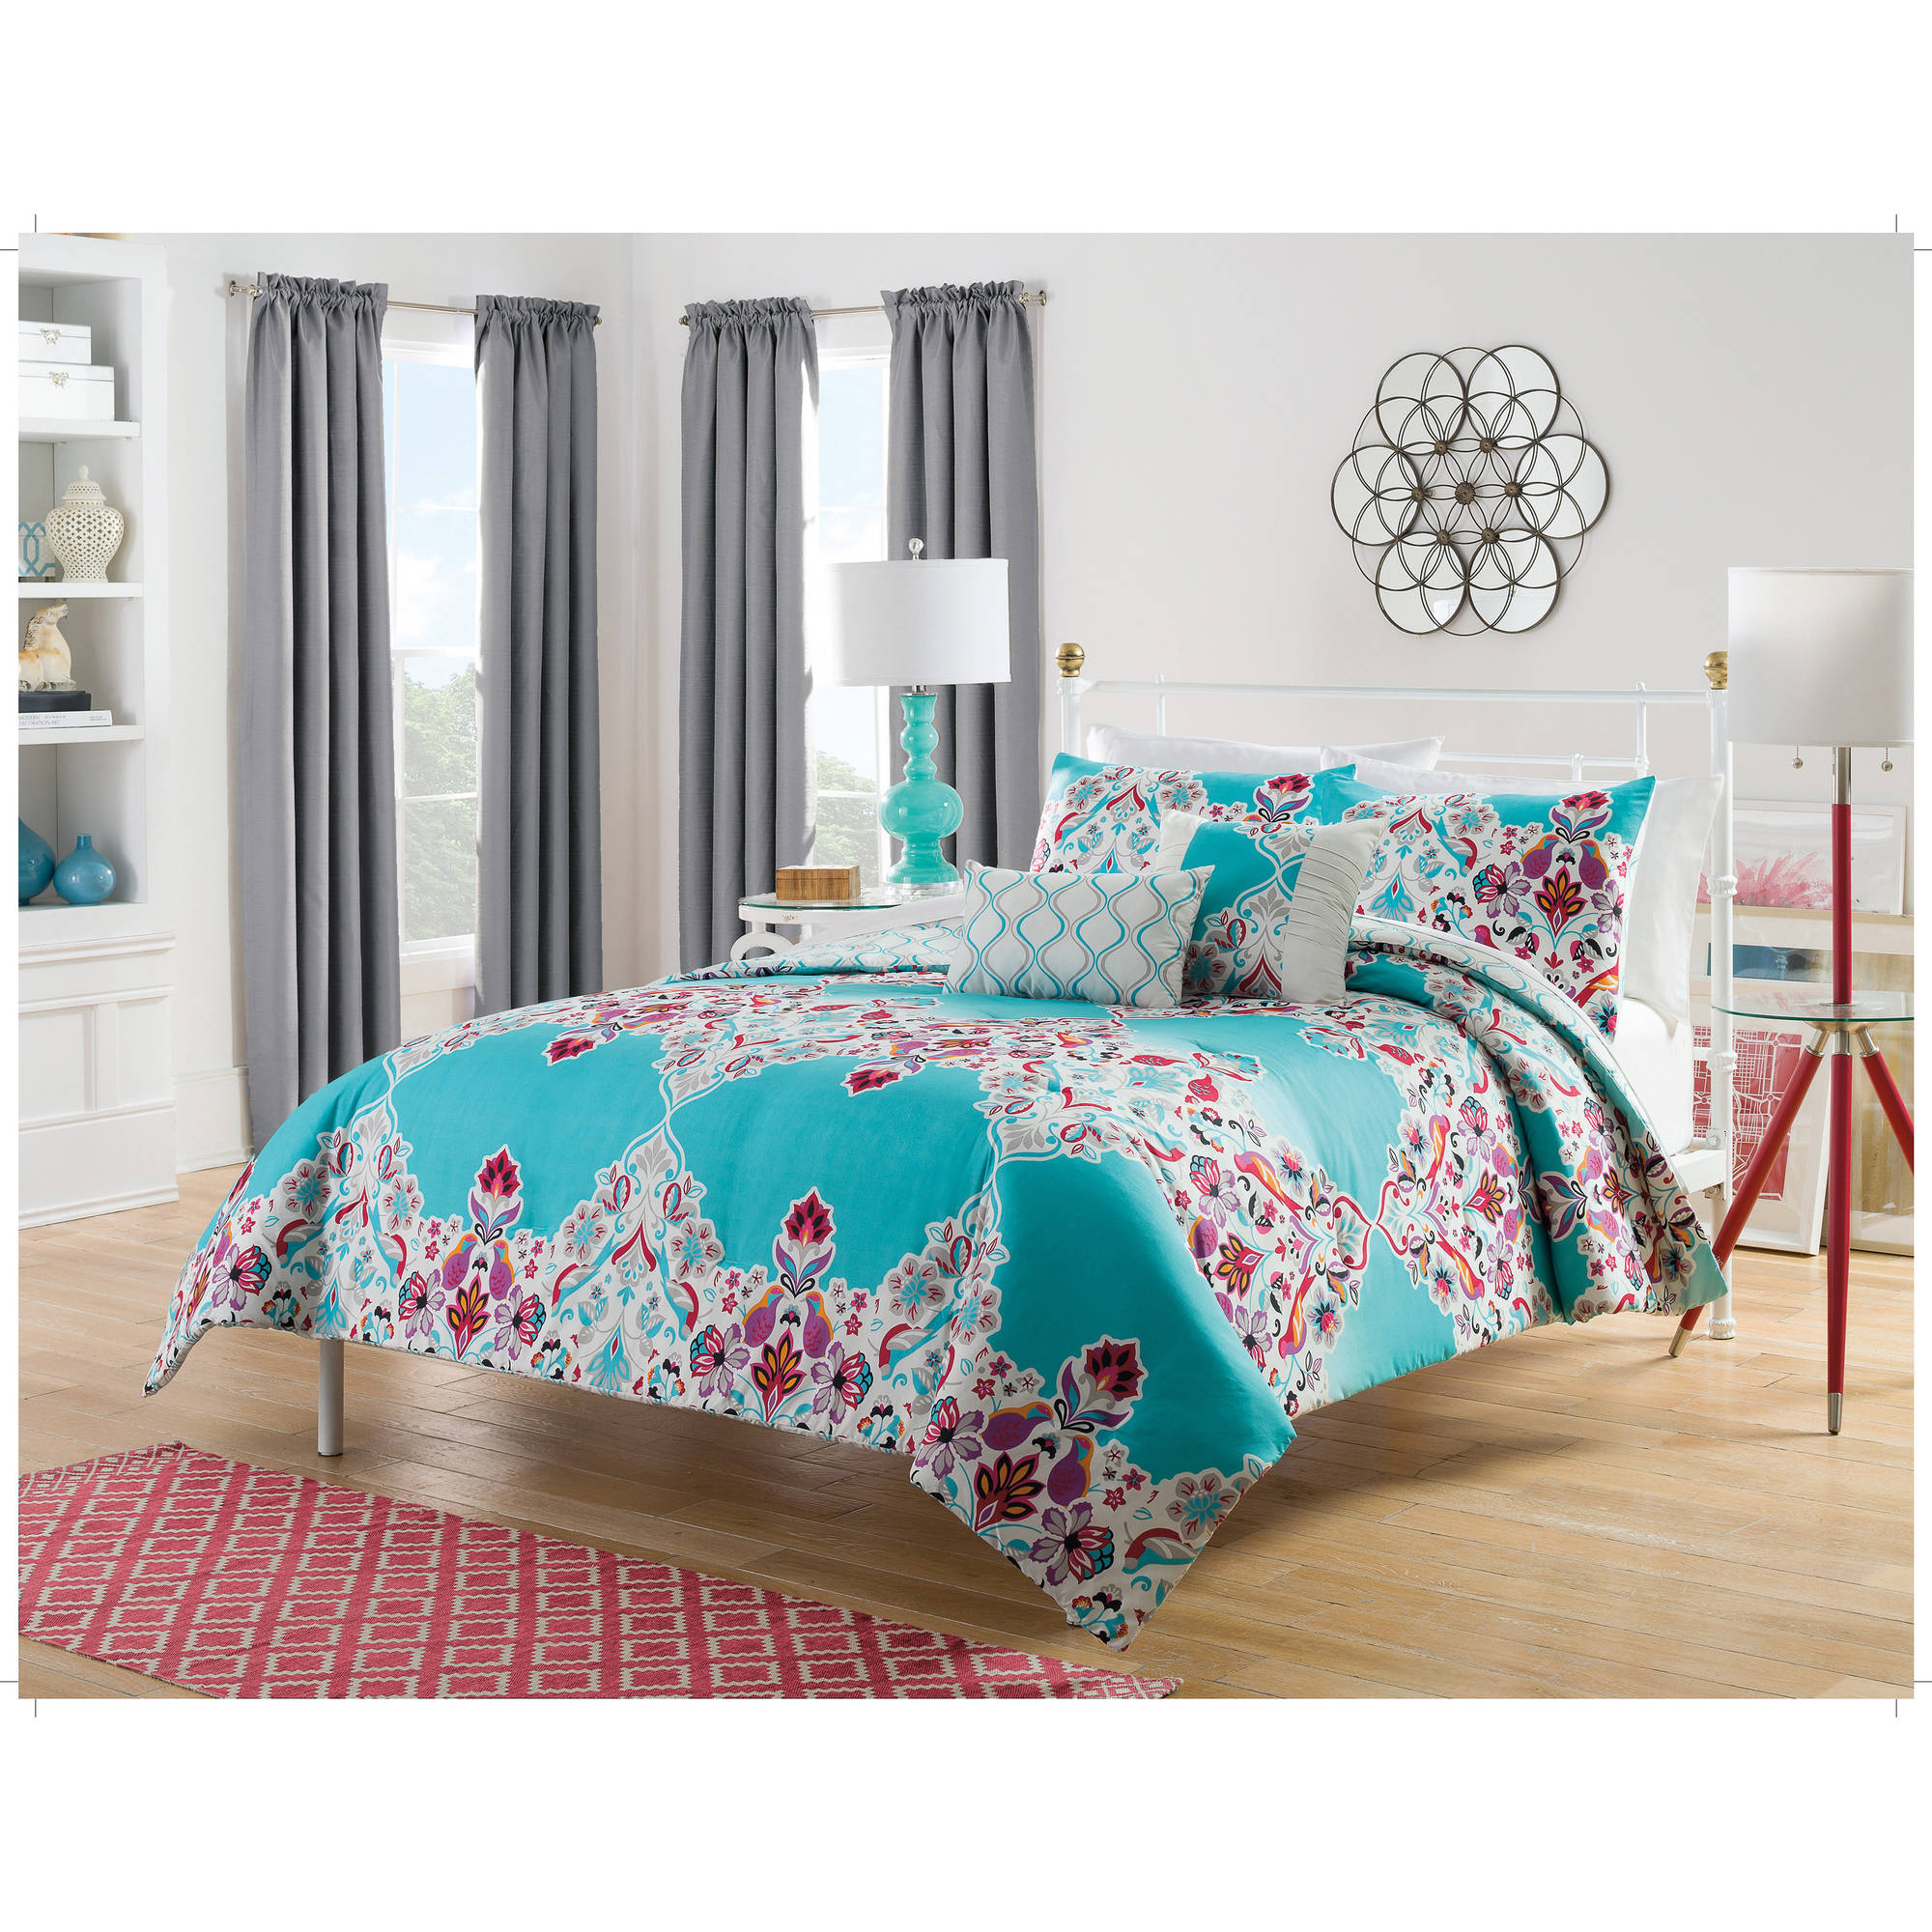 Harmony At Home Eden 5-Piece Reversible Bedding Comforter Set